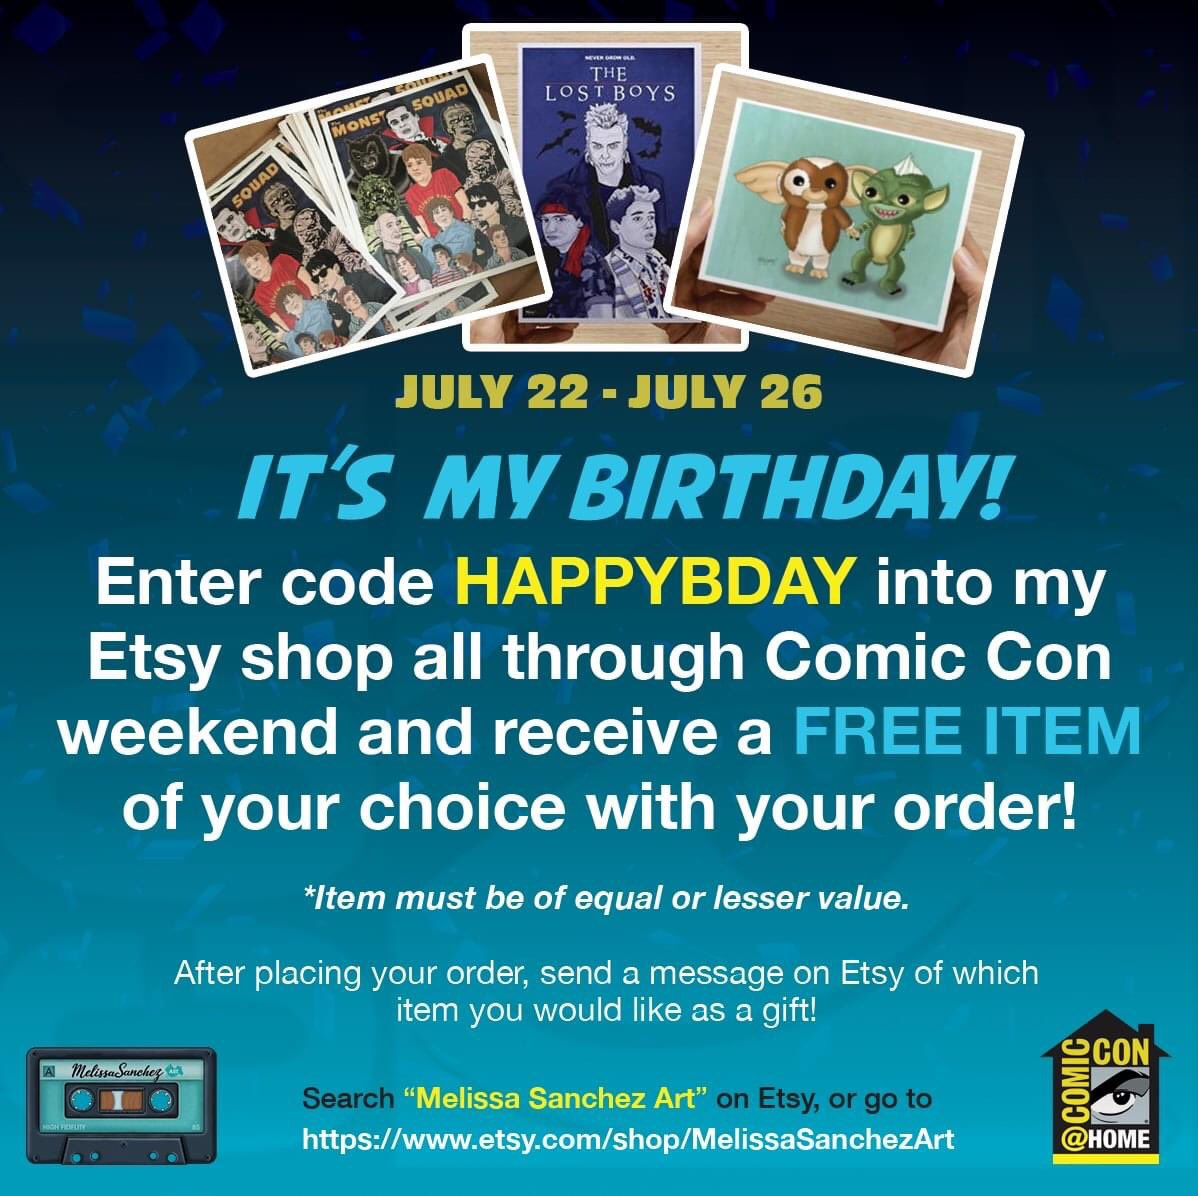 It's #SDCCatHome it's my birthday weekend! Let's all celebrate with this sweet deal going on over at my #etsyshop ! #melissasanchezart #art #SDCC #artistsontwitter #ComicCon https://t.co/GG6Y326NCl